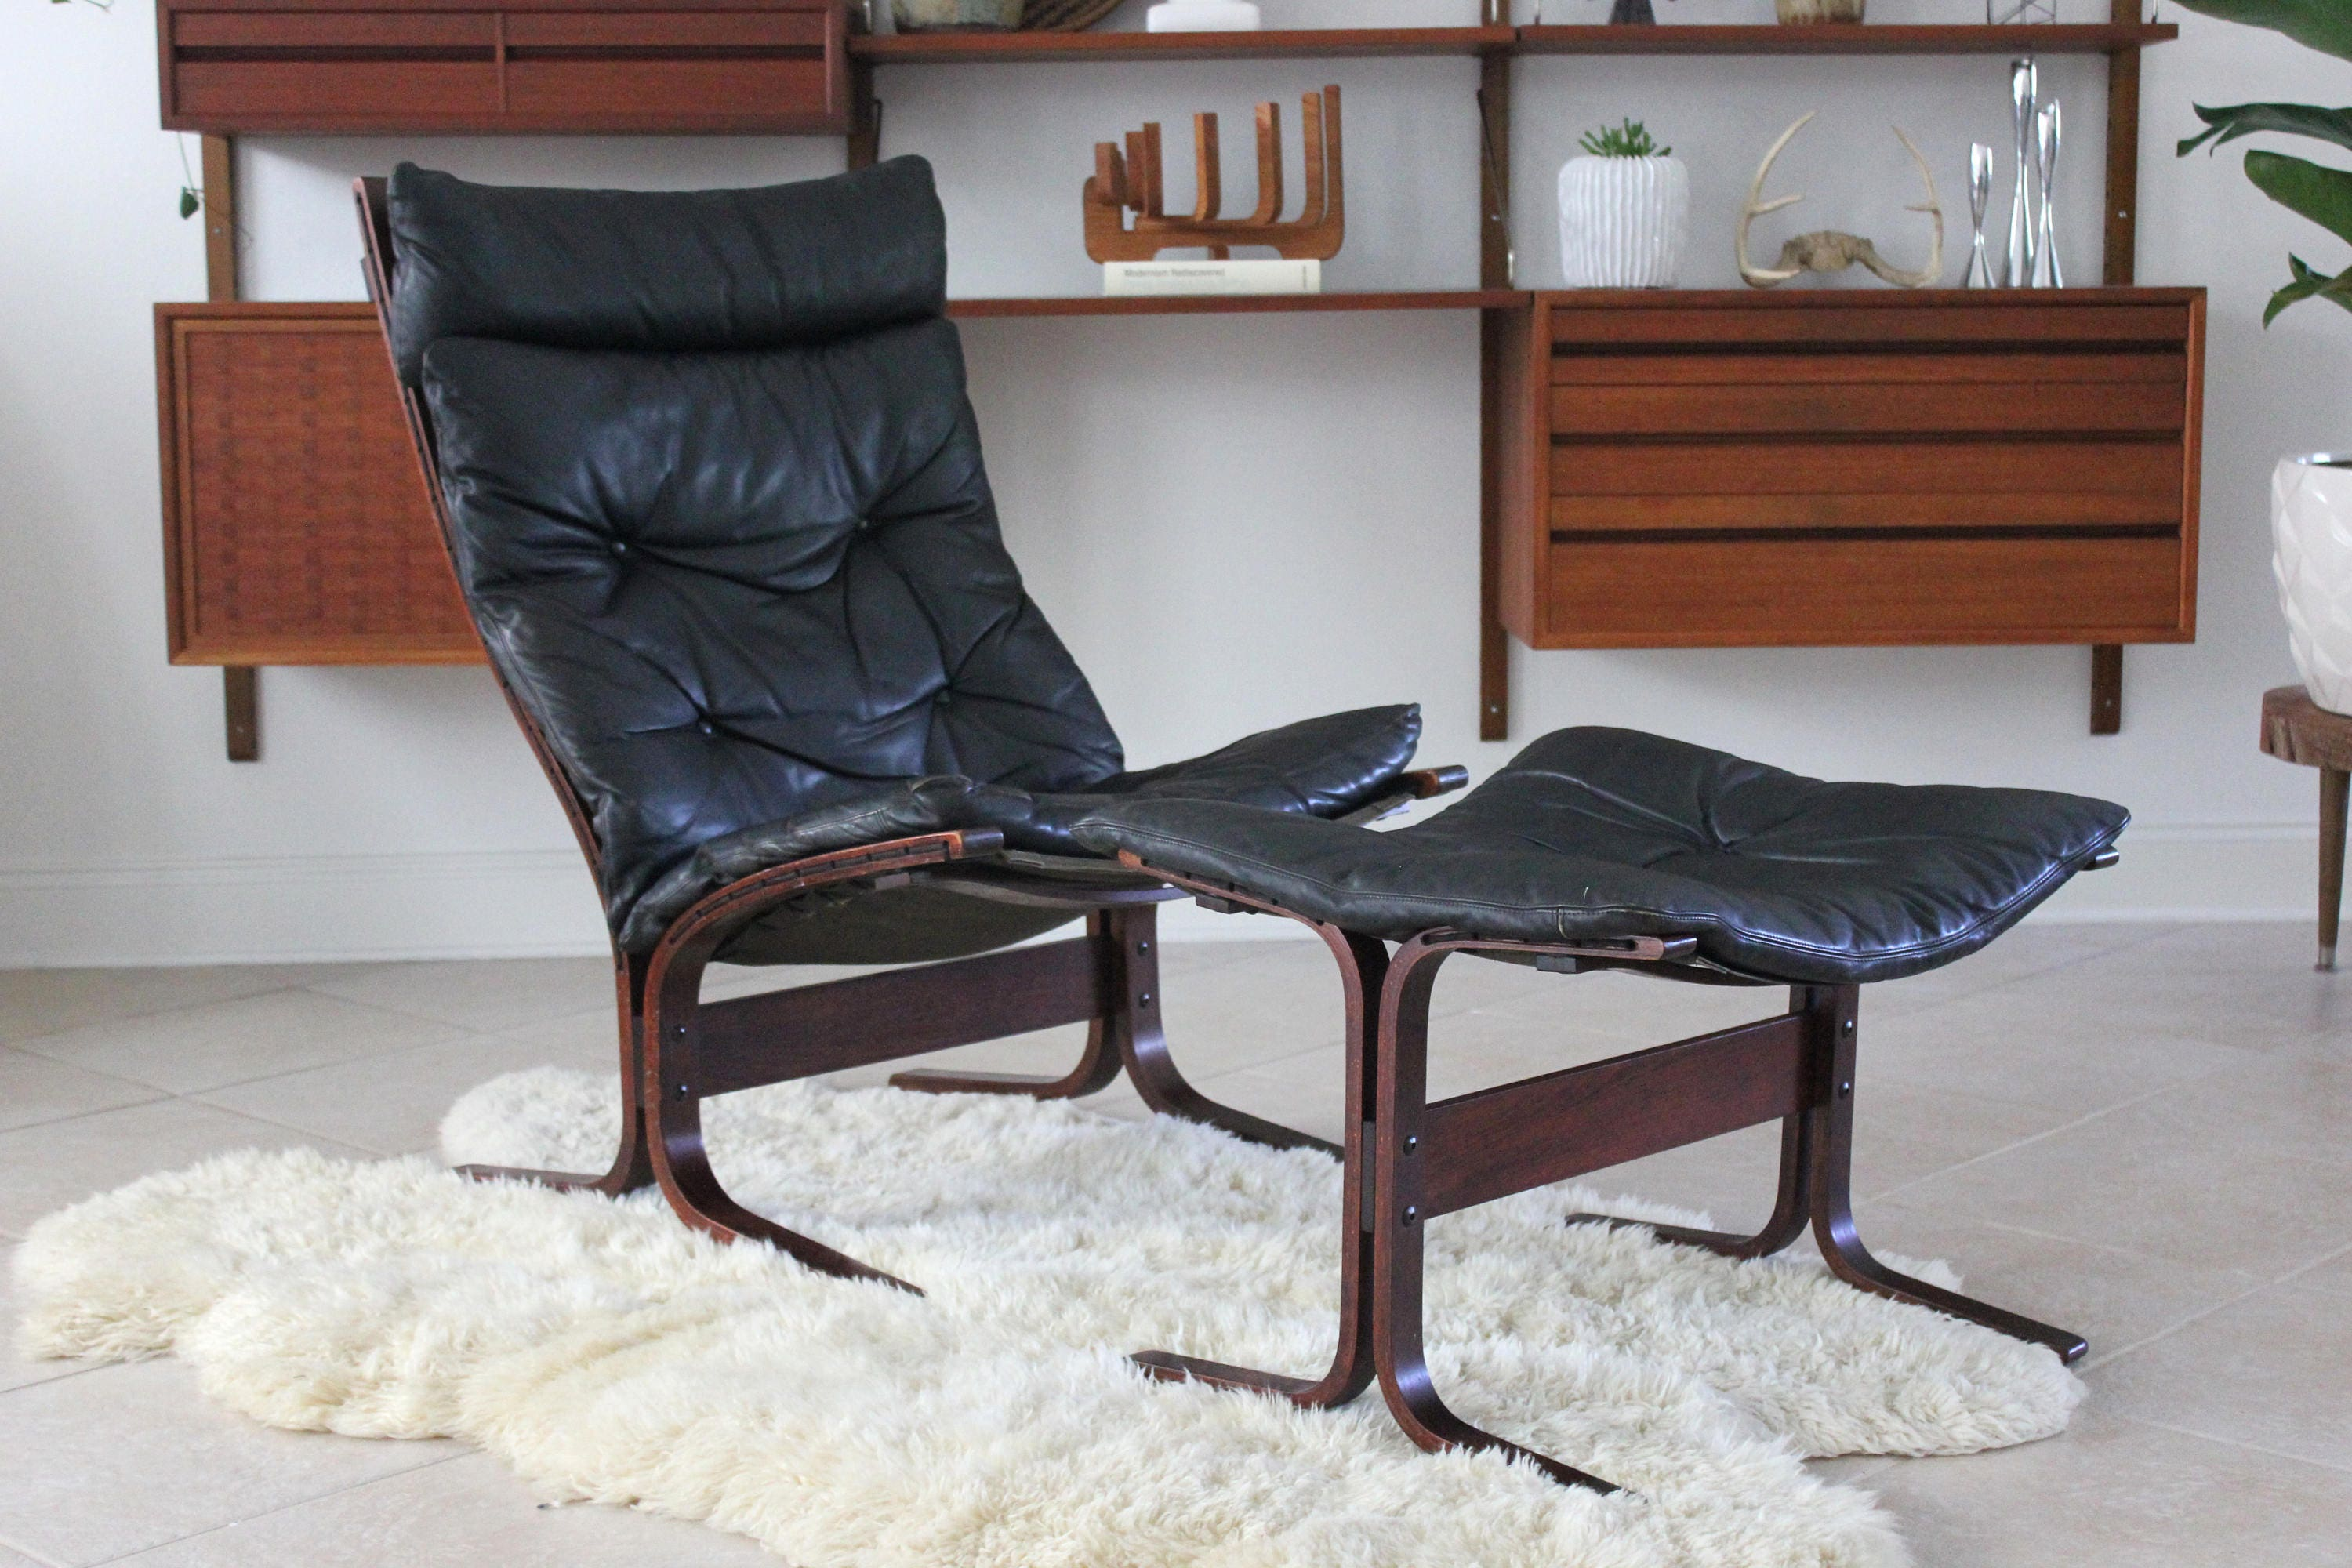 Groovy Mid Century Modern Westnofa Black Leather And Rosewood Gmtry Best Dining Table And Chair Ideas Images Gmtryco